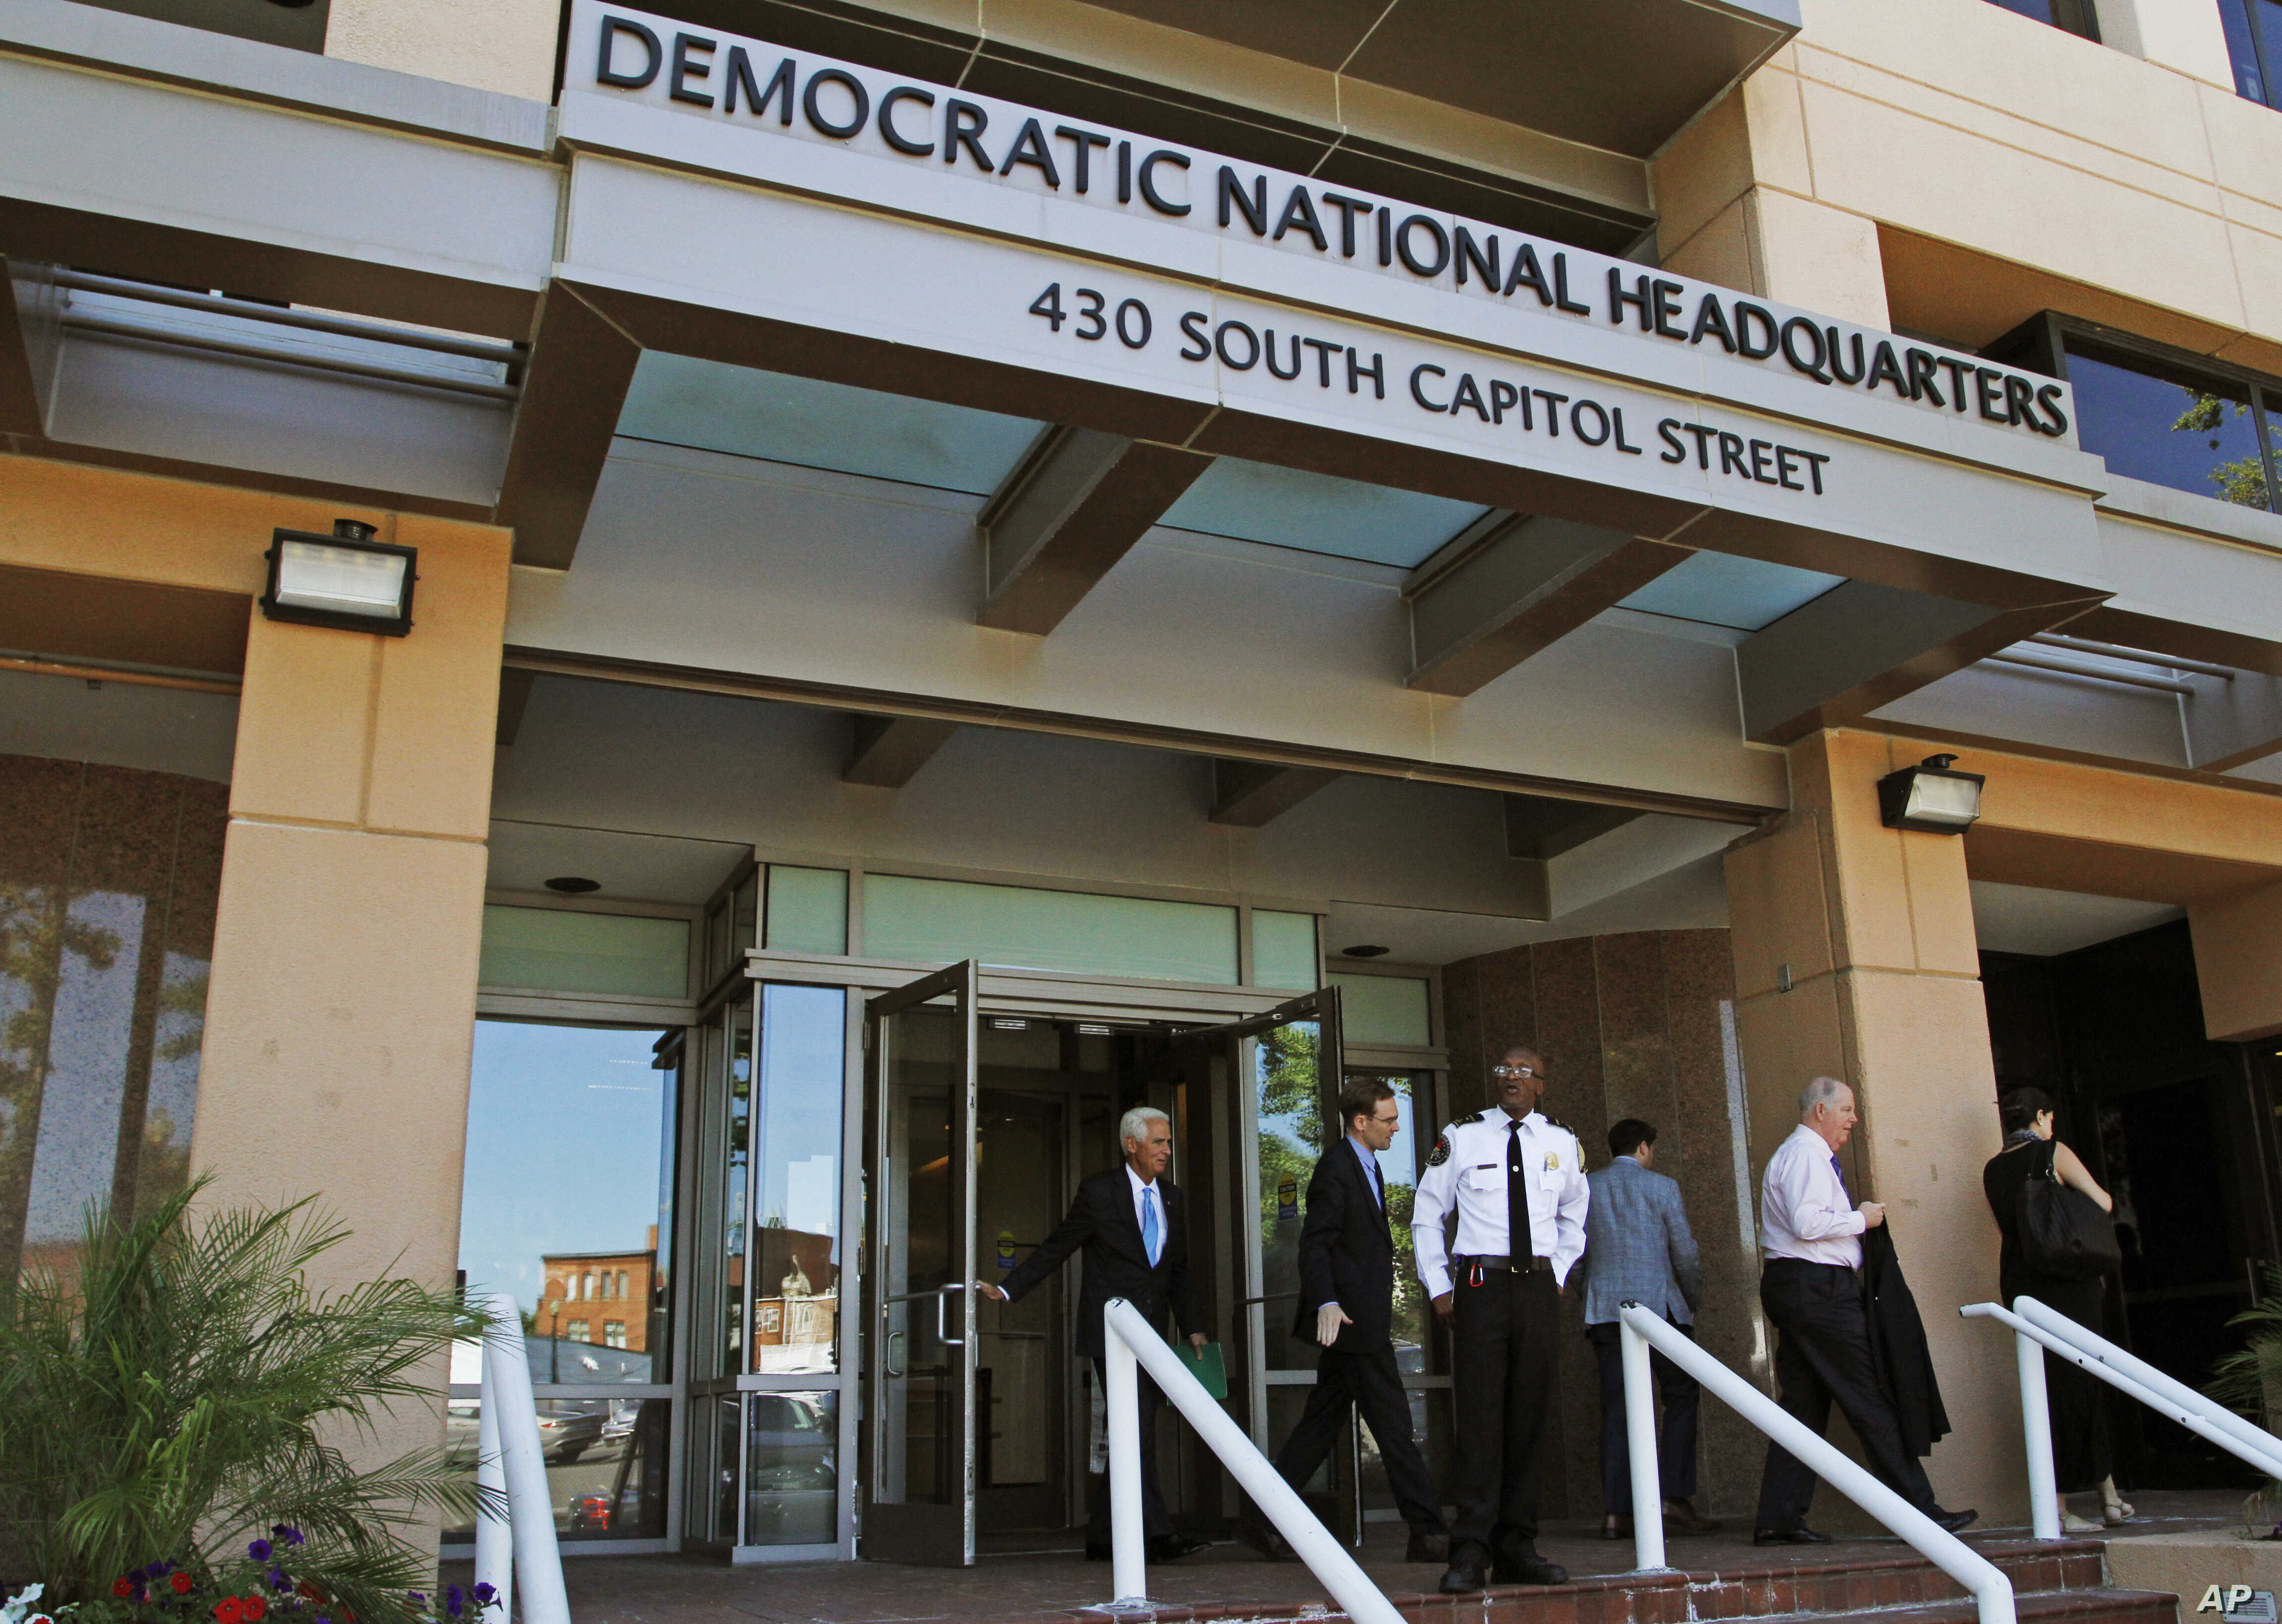 FILE - people stand outside the Democratic National Committee (DNC) headquarters in Washington.